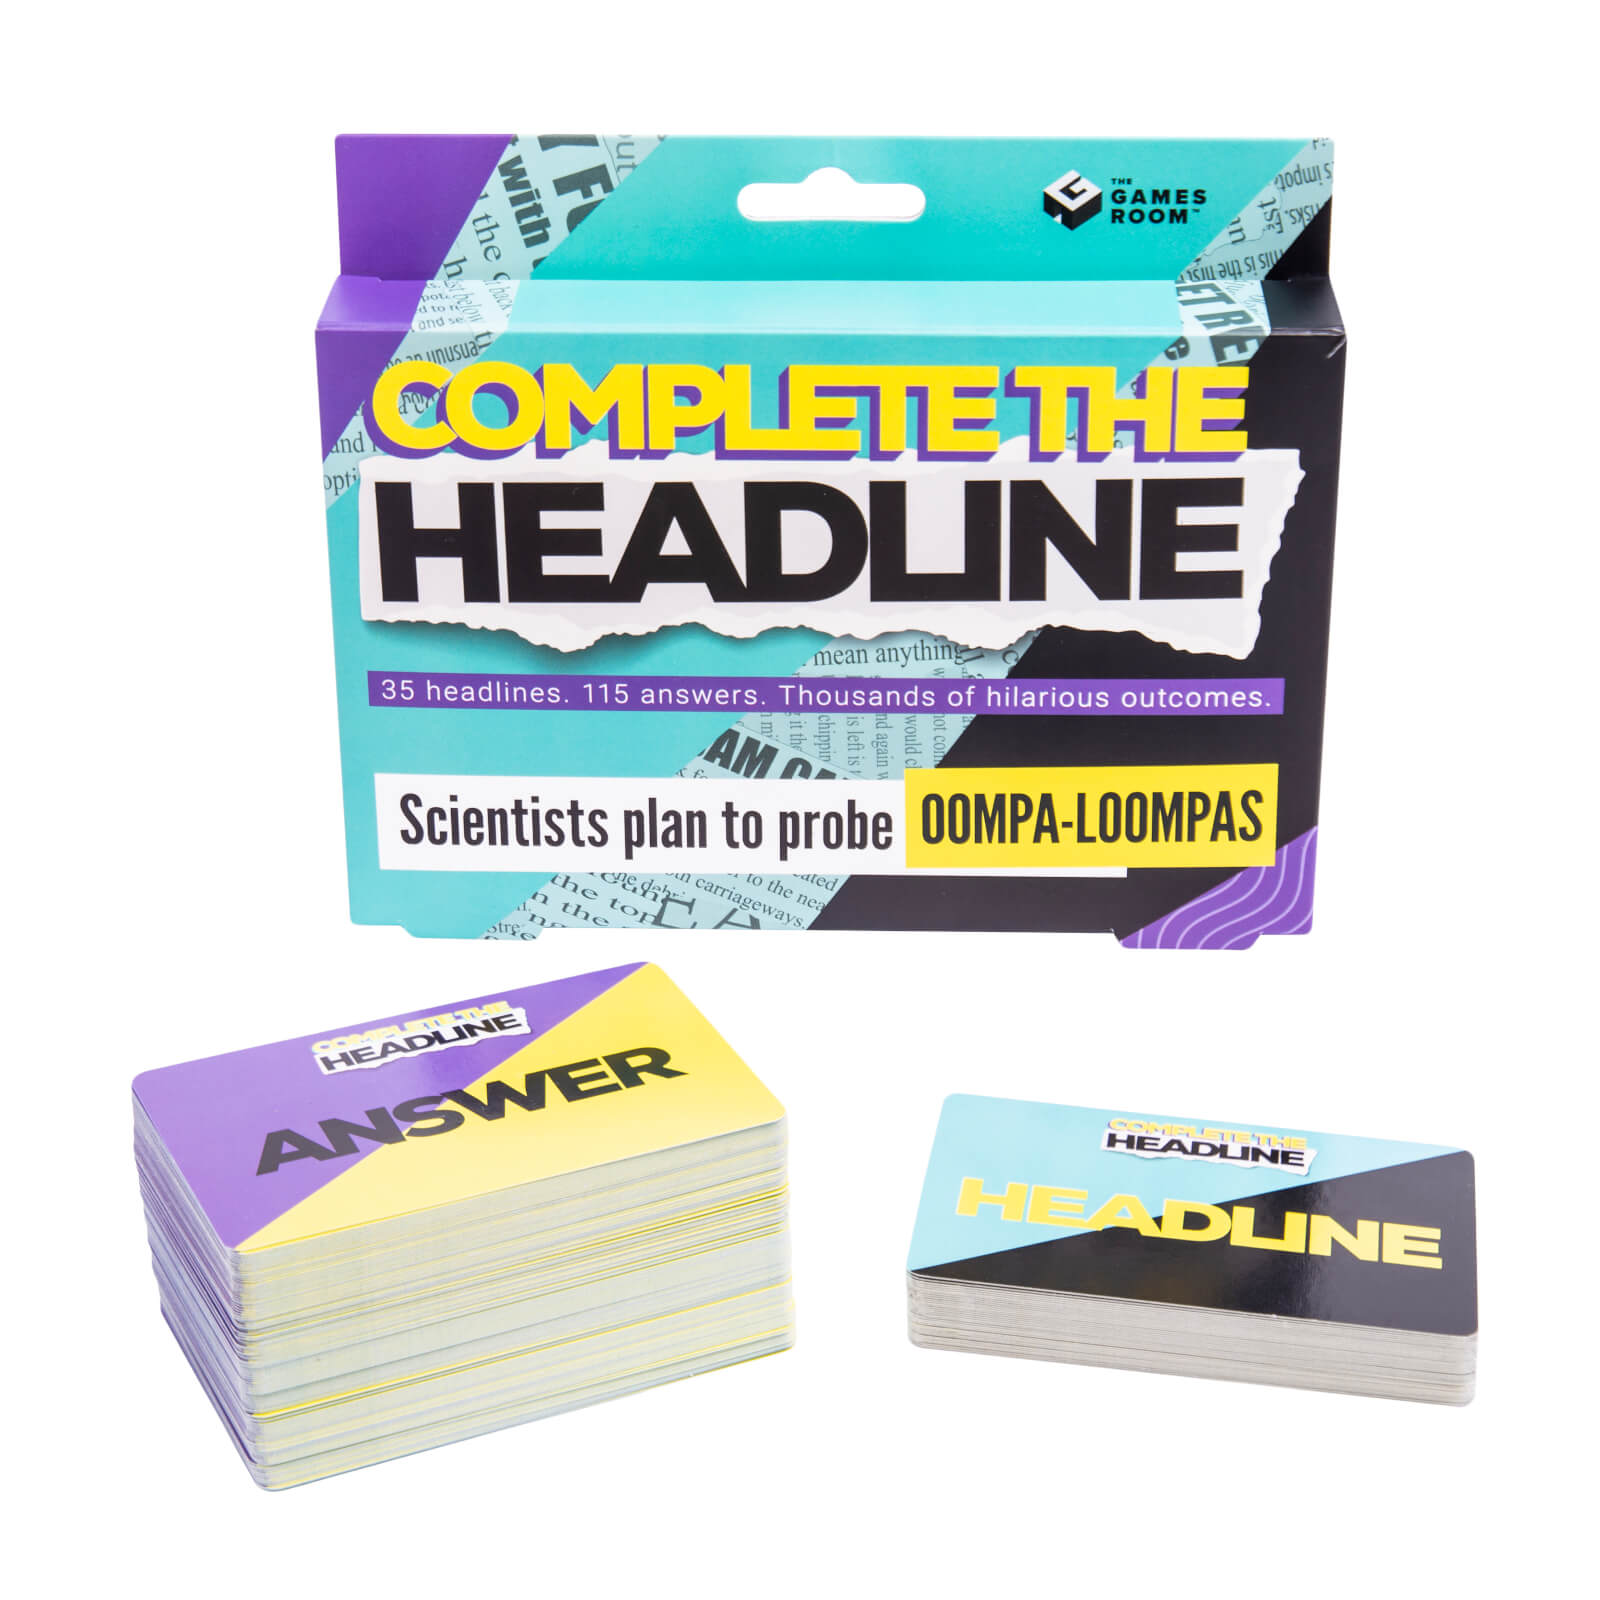 Image of Complete the Headline Card Game